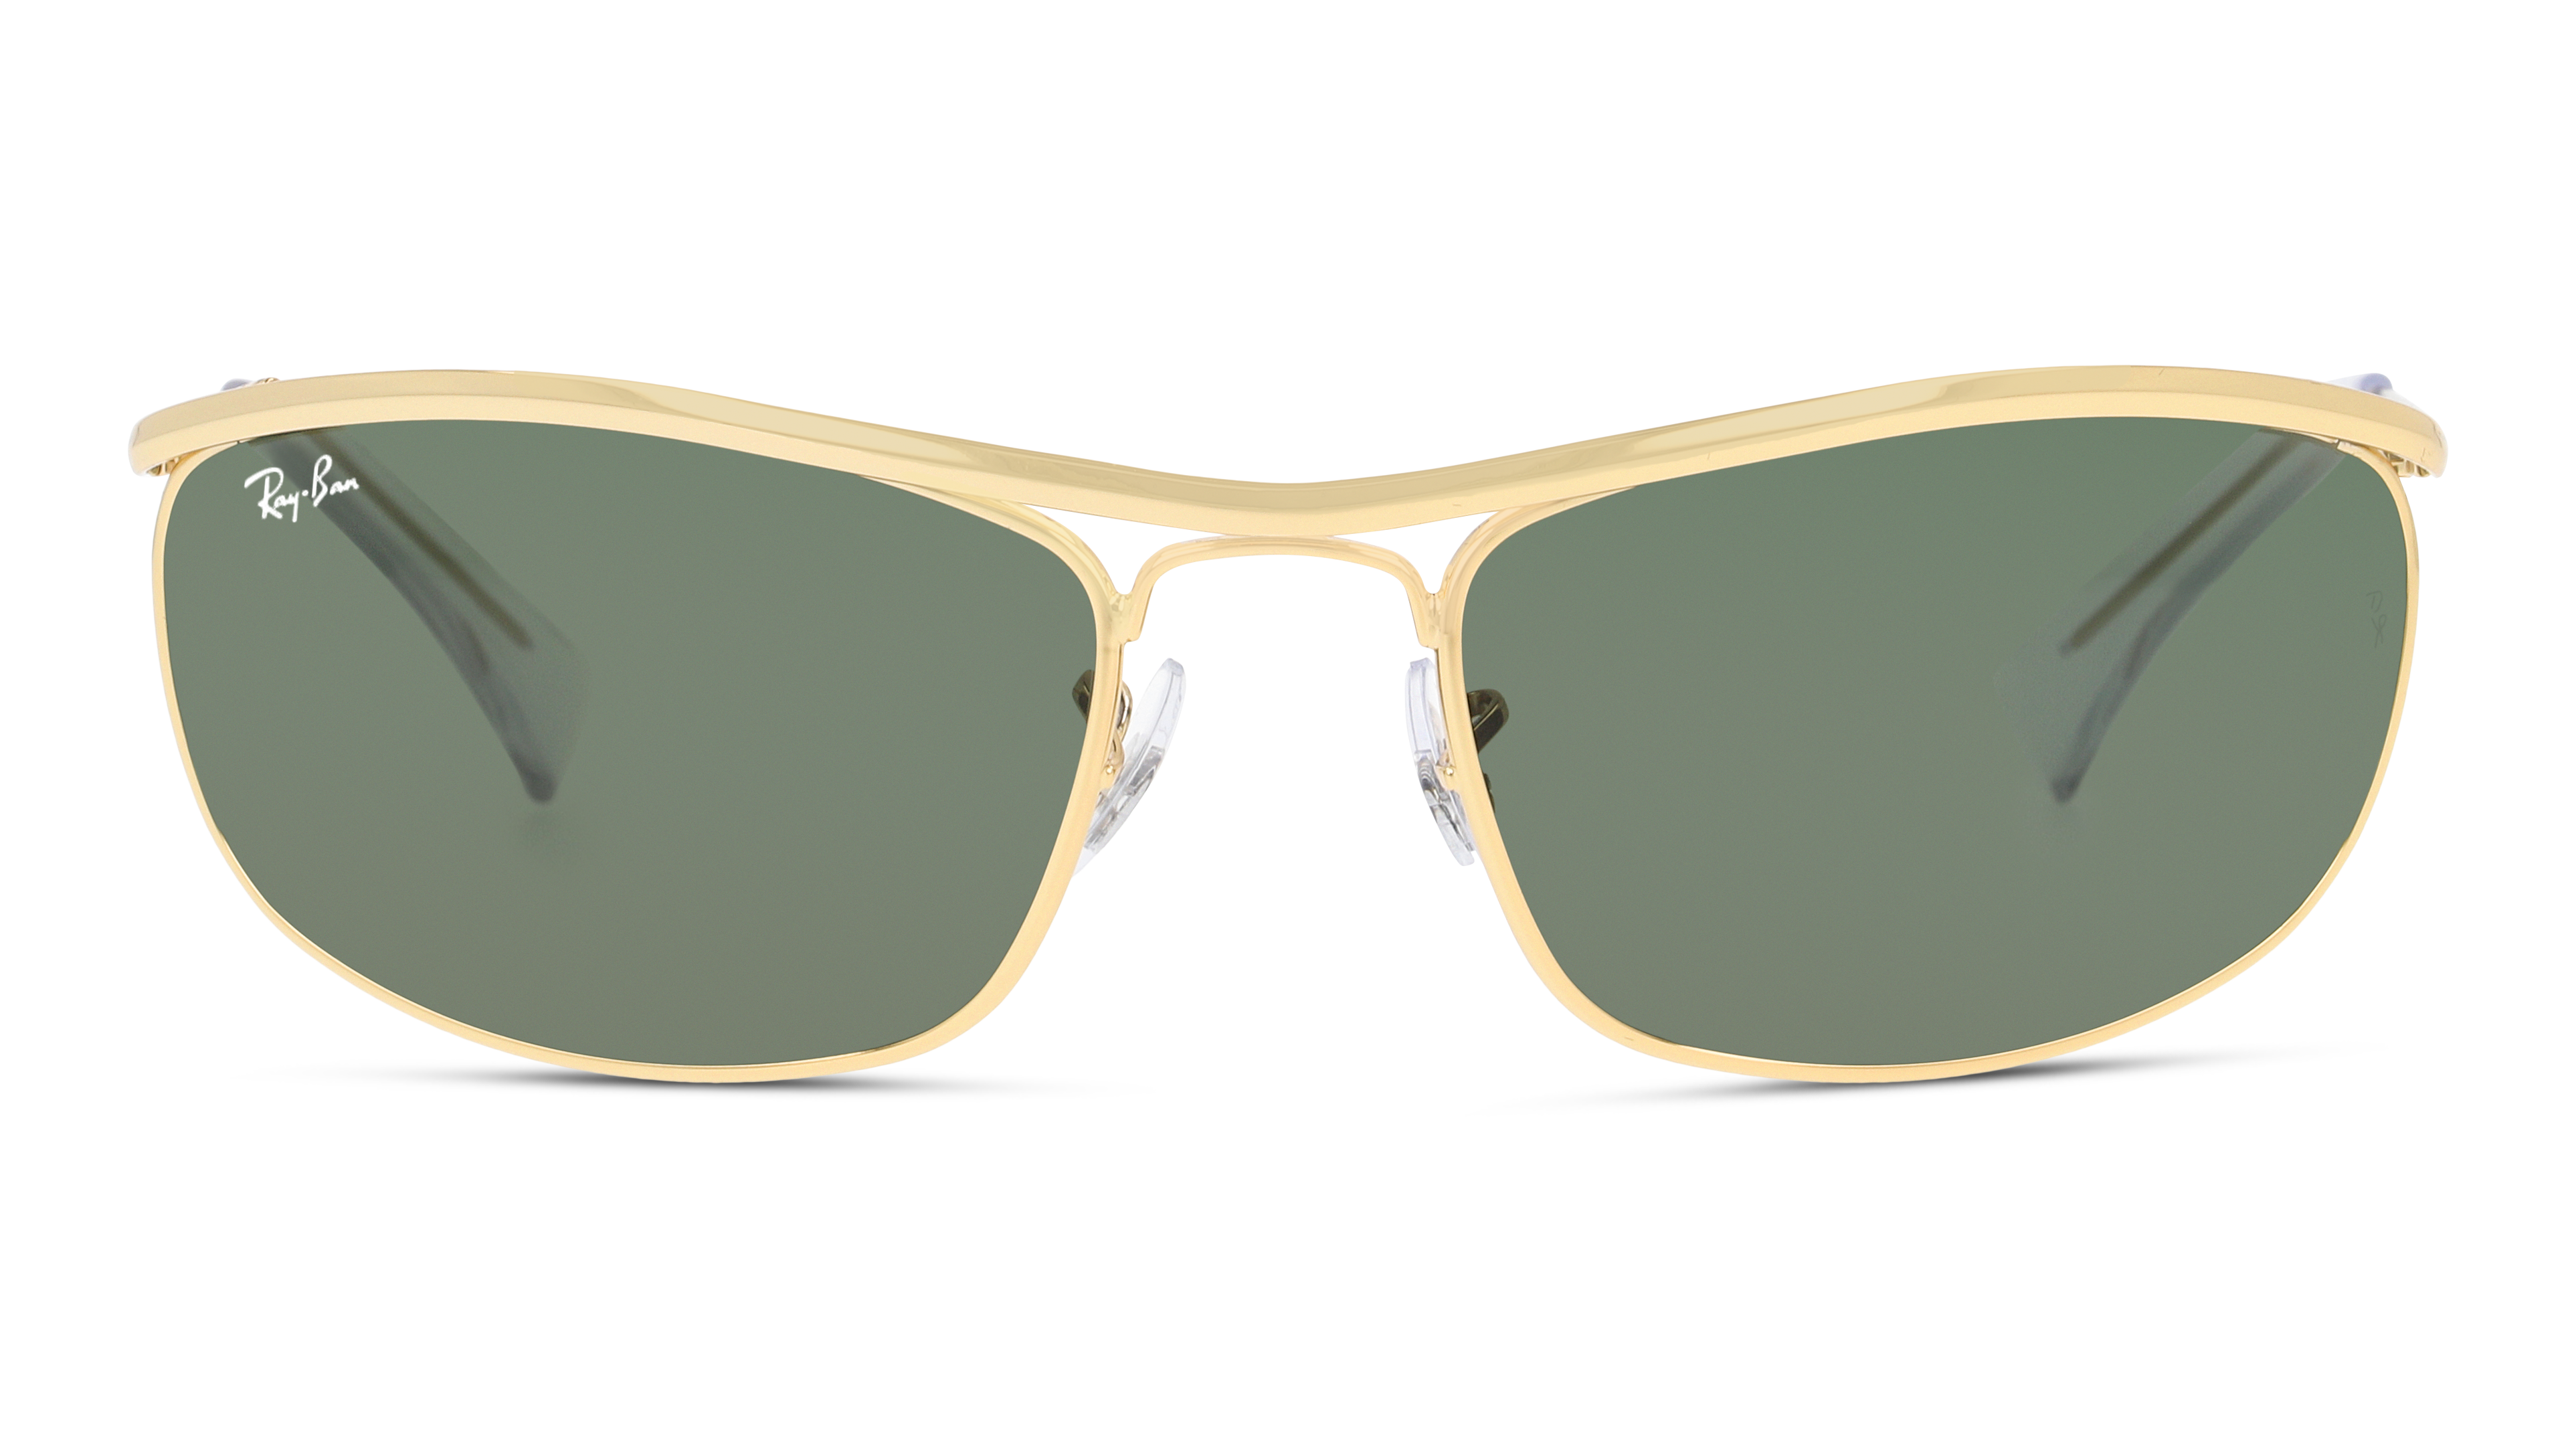 Front Ray-Ban Ray-Ban 0RB3119 001 59/19 Goud/Groen